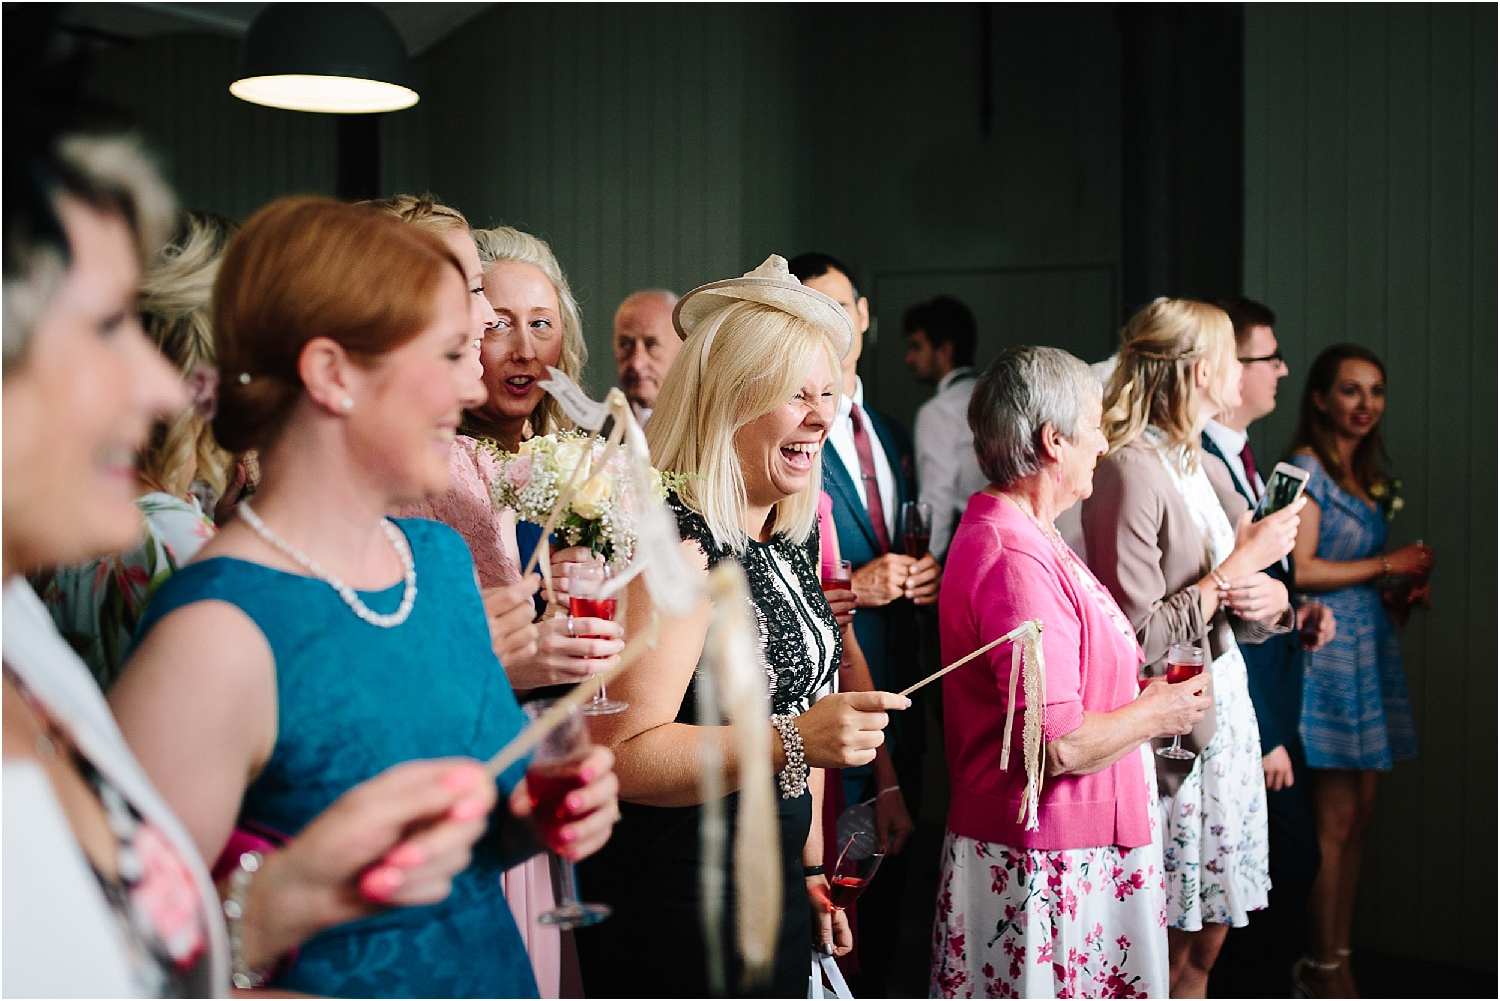 Wedding-west-mill-venue-professional-photographer-natural-documentary-nottingham-derby-173_BLOG.jpg